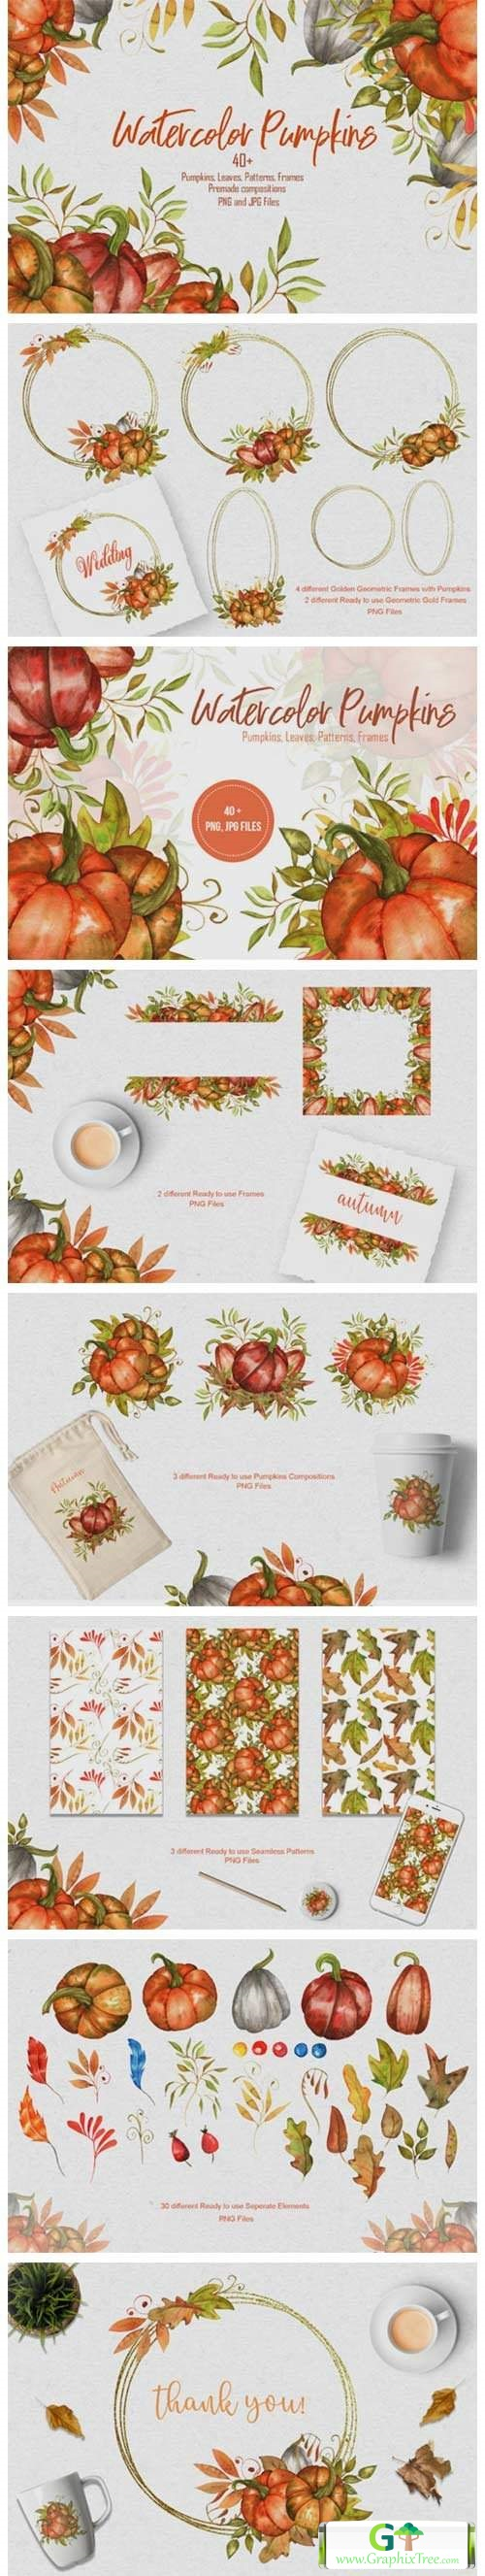 Watercolor Pumpkins Collection [Stock Image] [illustrations]